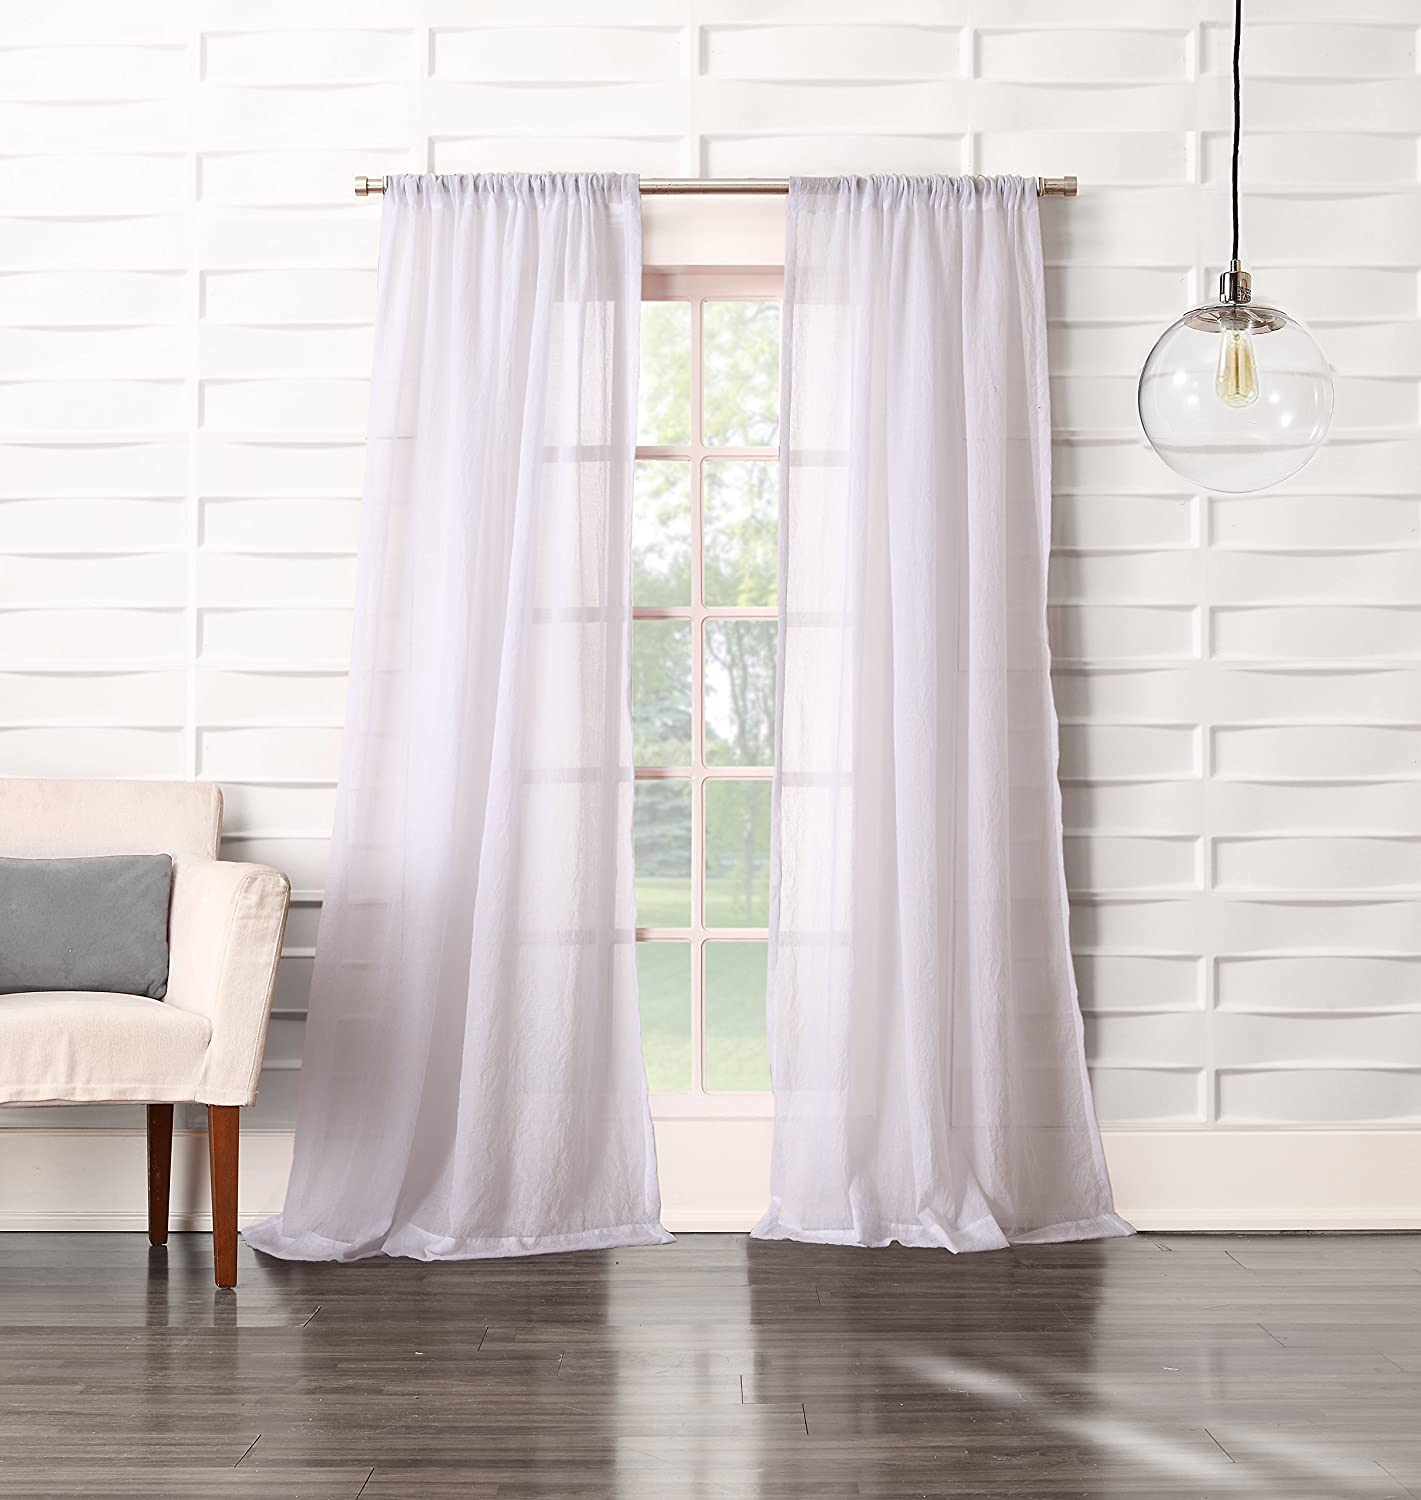 Amazon.com: No. 918 Tayla Crushed Sheer Voile Rod Pocket Curtain ...